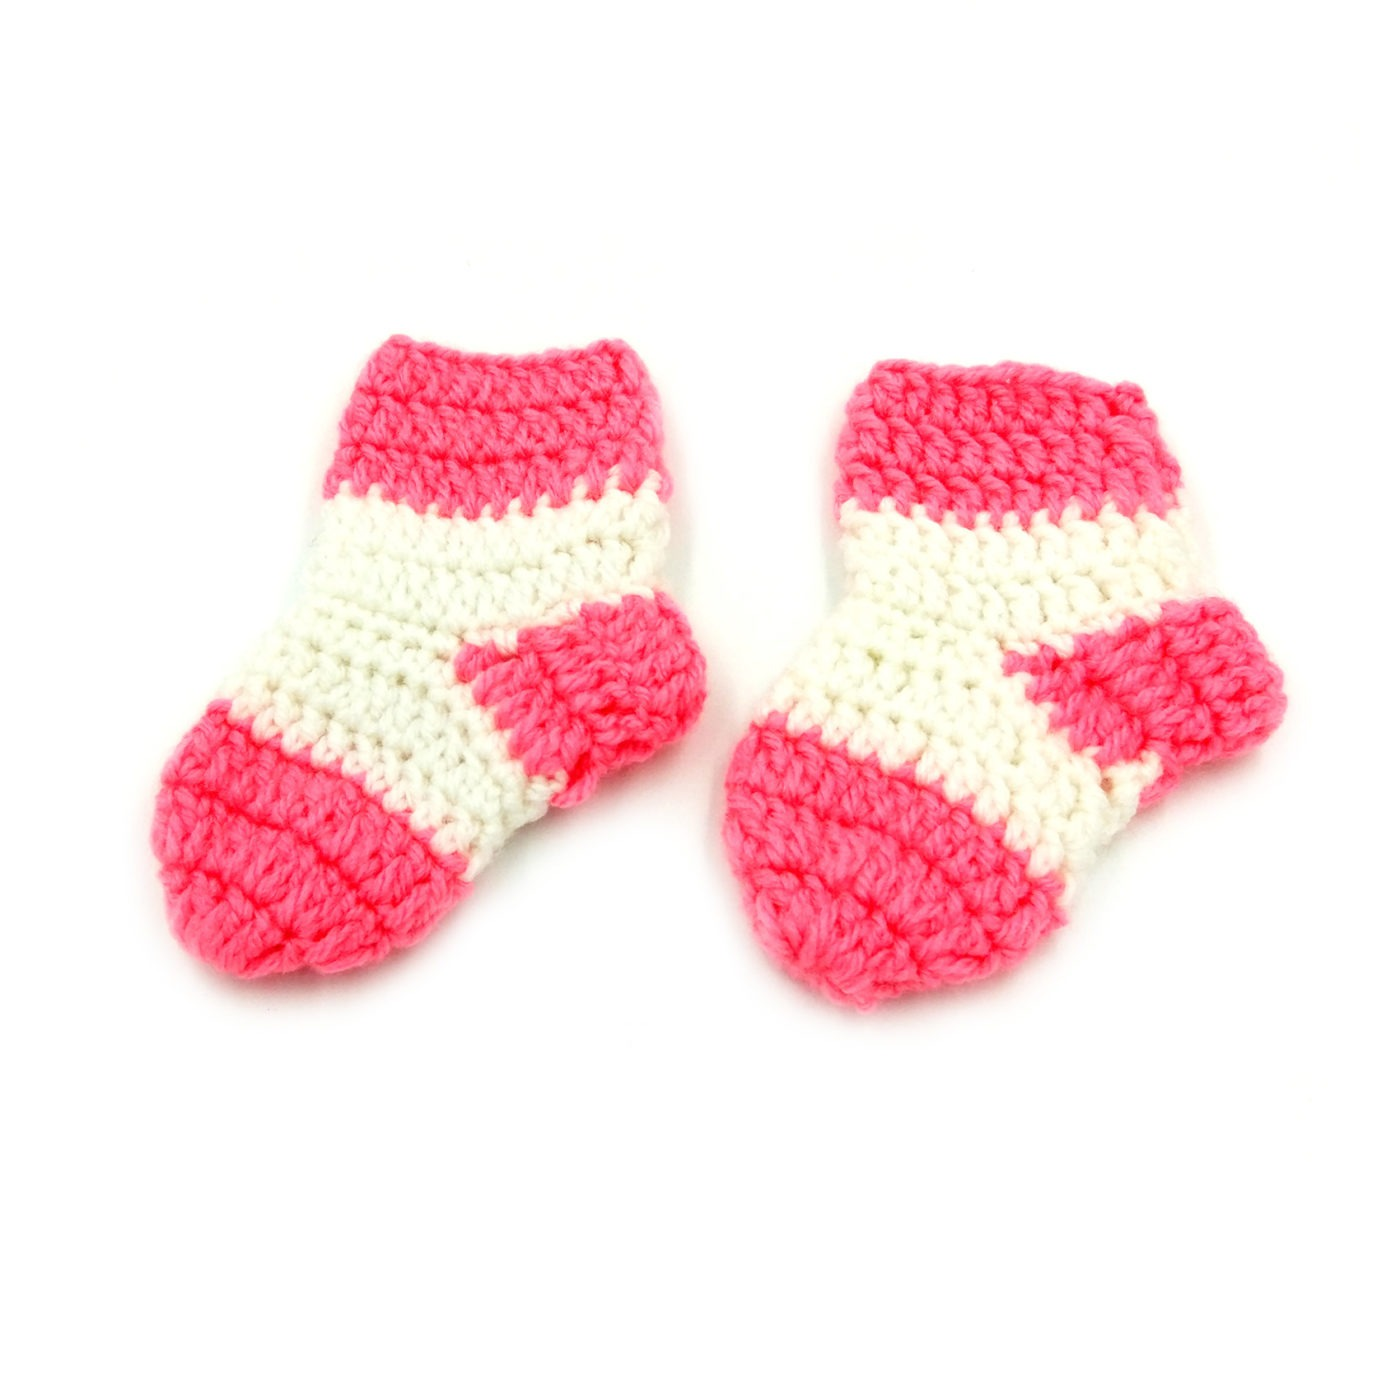 Infant Socks Pink & White • Magic Needles Handmade Caps Incas